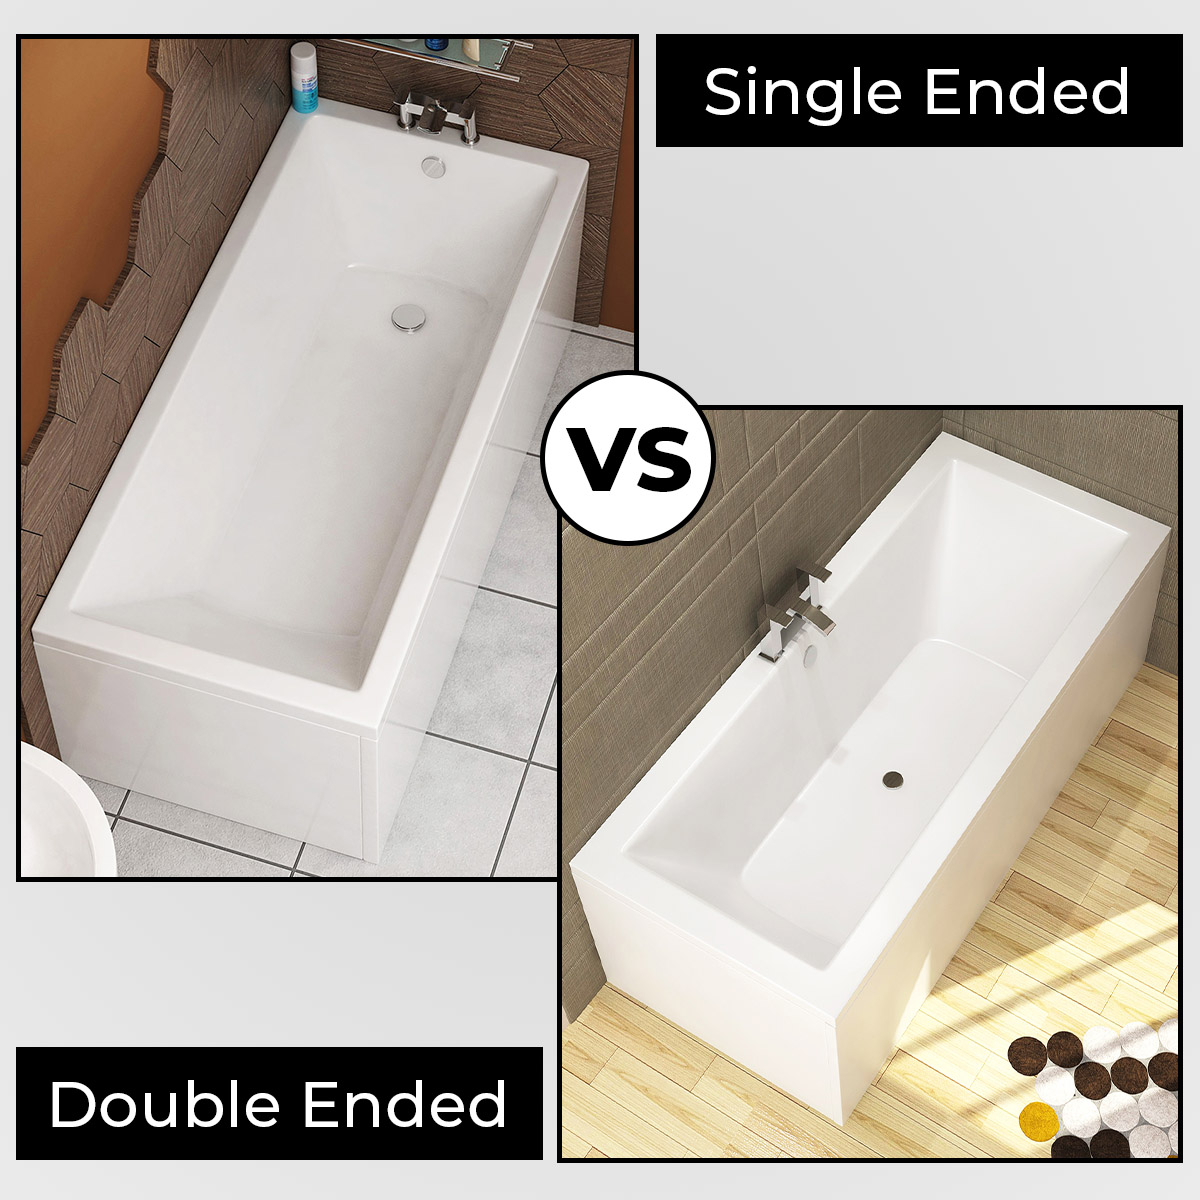 Everything you need to know about Single ended and Double Ended Baths